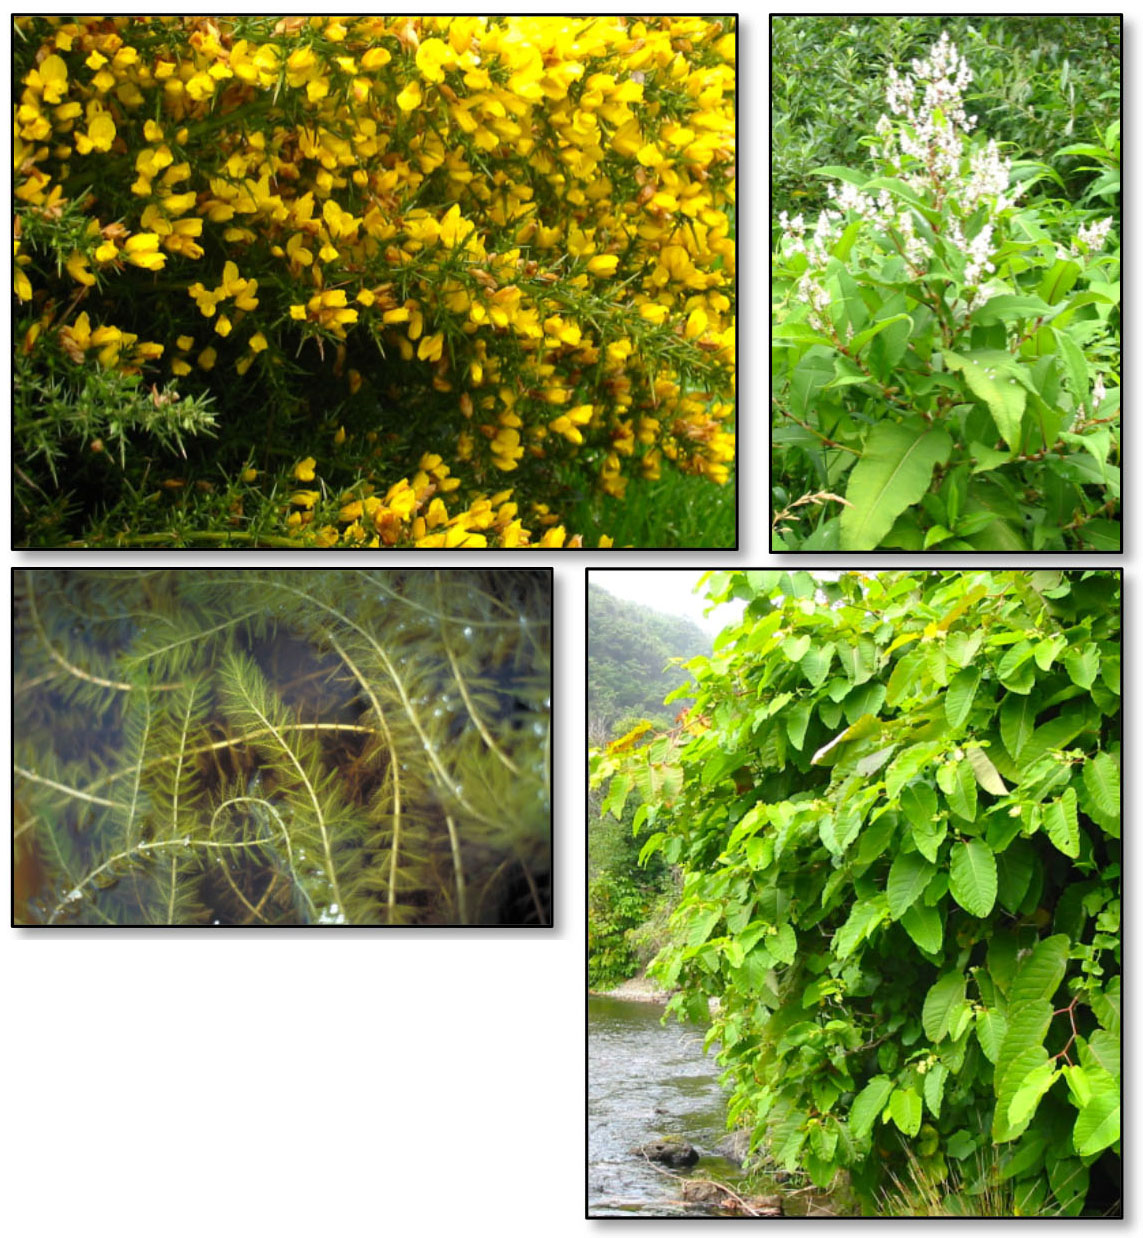 non native invasive plants Lead to long-term consequences for native biodiversity invasive non-native species can harm the environment in different ways whilst himalayan balsam and water primrose are colourful and attractive, they often become so prolific that they displace native plants dense mats of floating pennywort or parrot's feather can.